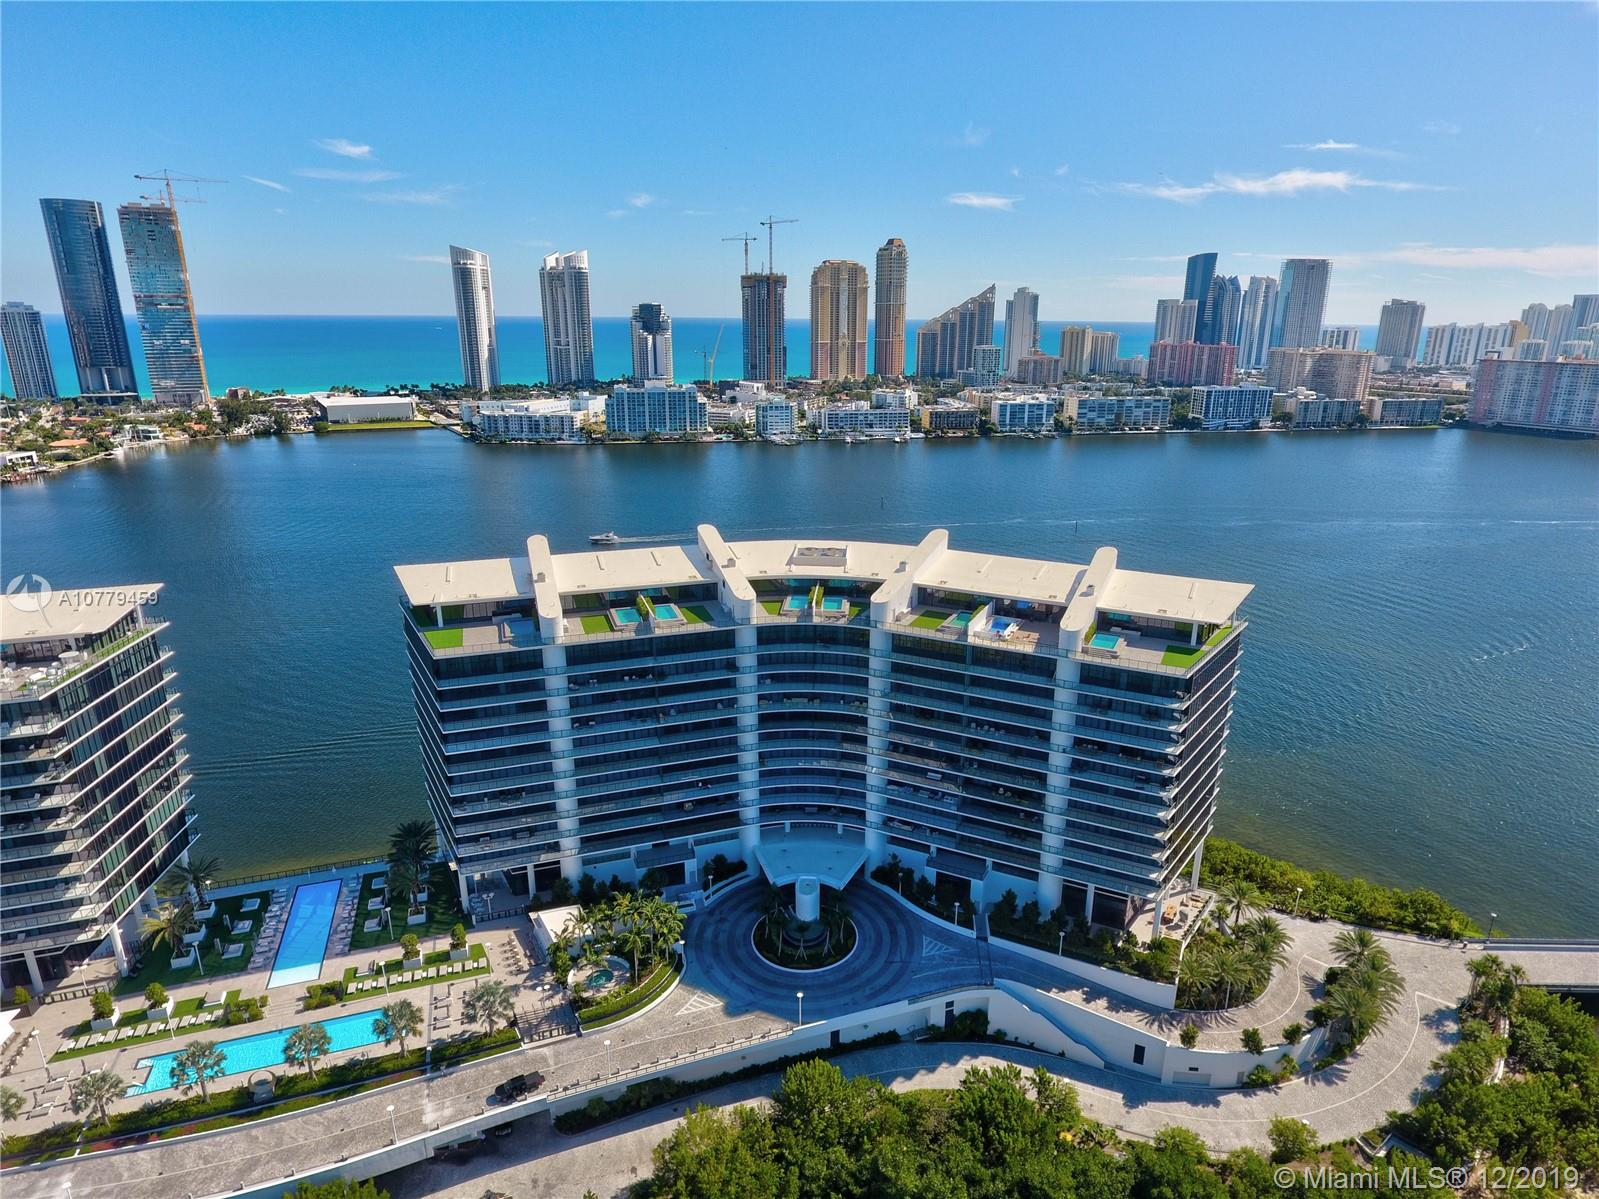 Please note: the above price reflects the suggested opening bid for the property, which is being offered for sale by private auction. Seller reserves the right to accept or reject any bid. Please visit prusa. com for details. Elegantly Furnished, Private, Modern, Exclusive Two Story Penthouse. Professionally designed by Steven G and ready to move in. Second Floor Private Rooftop Pool with outdoor KitchenHigh Ceilings, Open Floor Plan, 3 Large Outdoor Waterfront Terraces maximize the Panoramic views of the Ocean, Bay and City. 2 Outdoor Grills.IMMEDIATE SELLER FINANCING AVAILABLE. COMPETITIVE RATES. NO POINTS. Prive Island Estates offers full-time concierge service, a marina, restaurant, wine cellar, cigar room, playrooms for children, and a two-story gym with steam rooms and saunas.